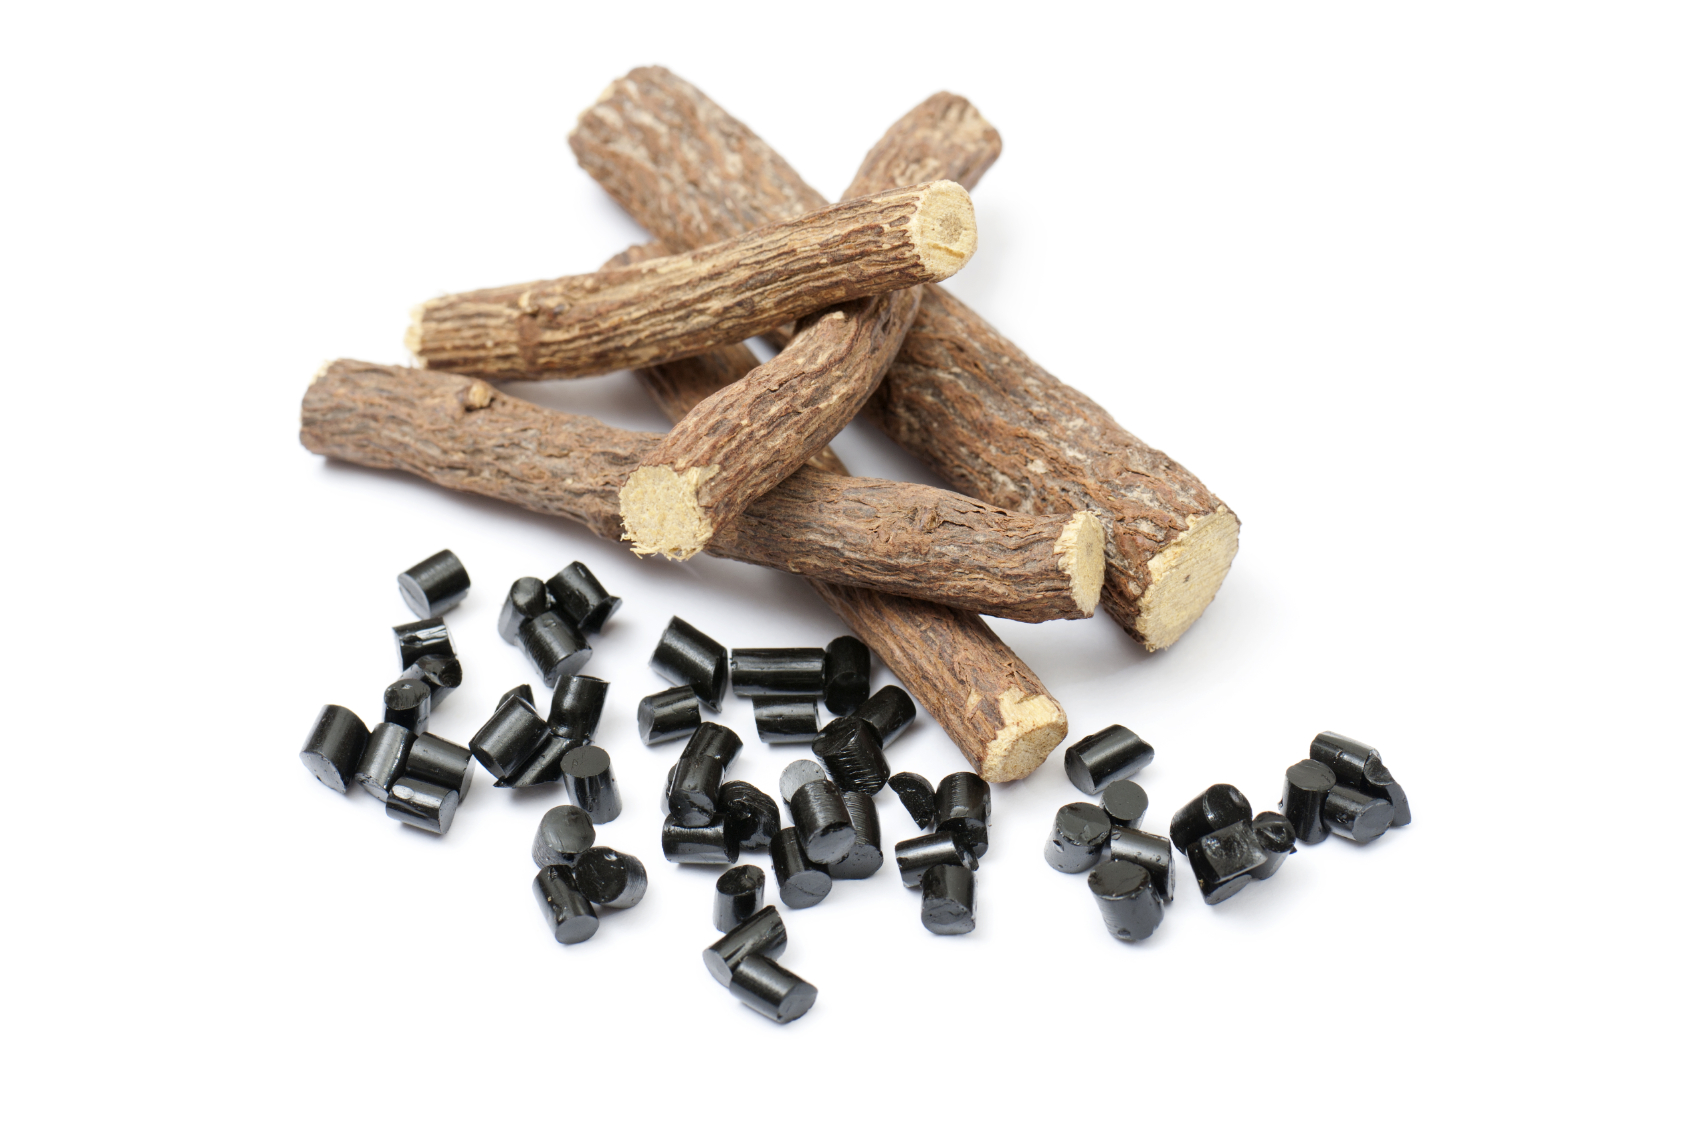 Studies prove people can lose a significant amount of weight with black licorice.